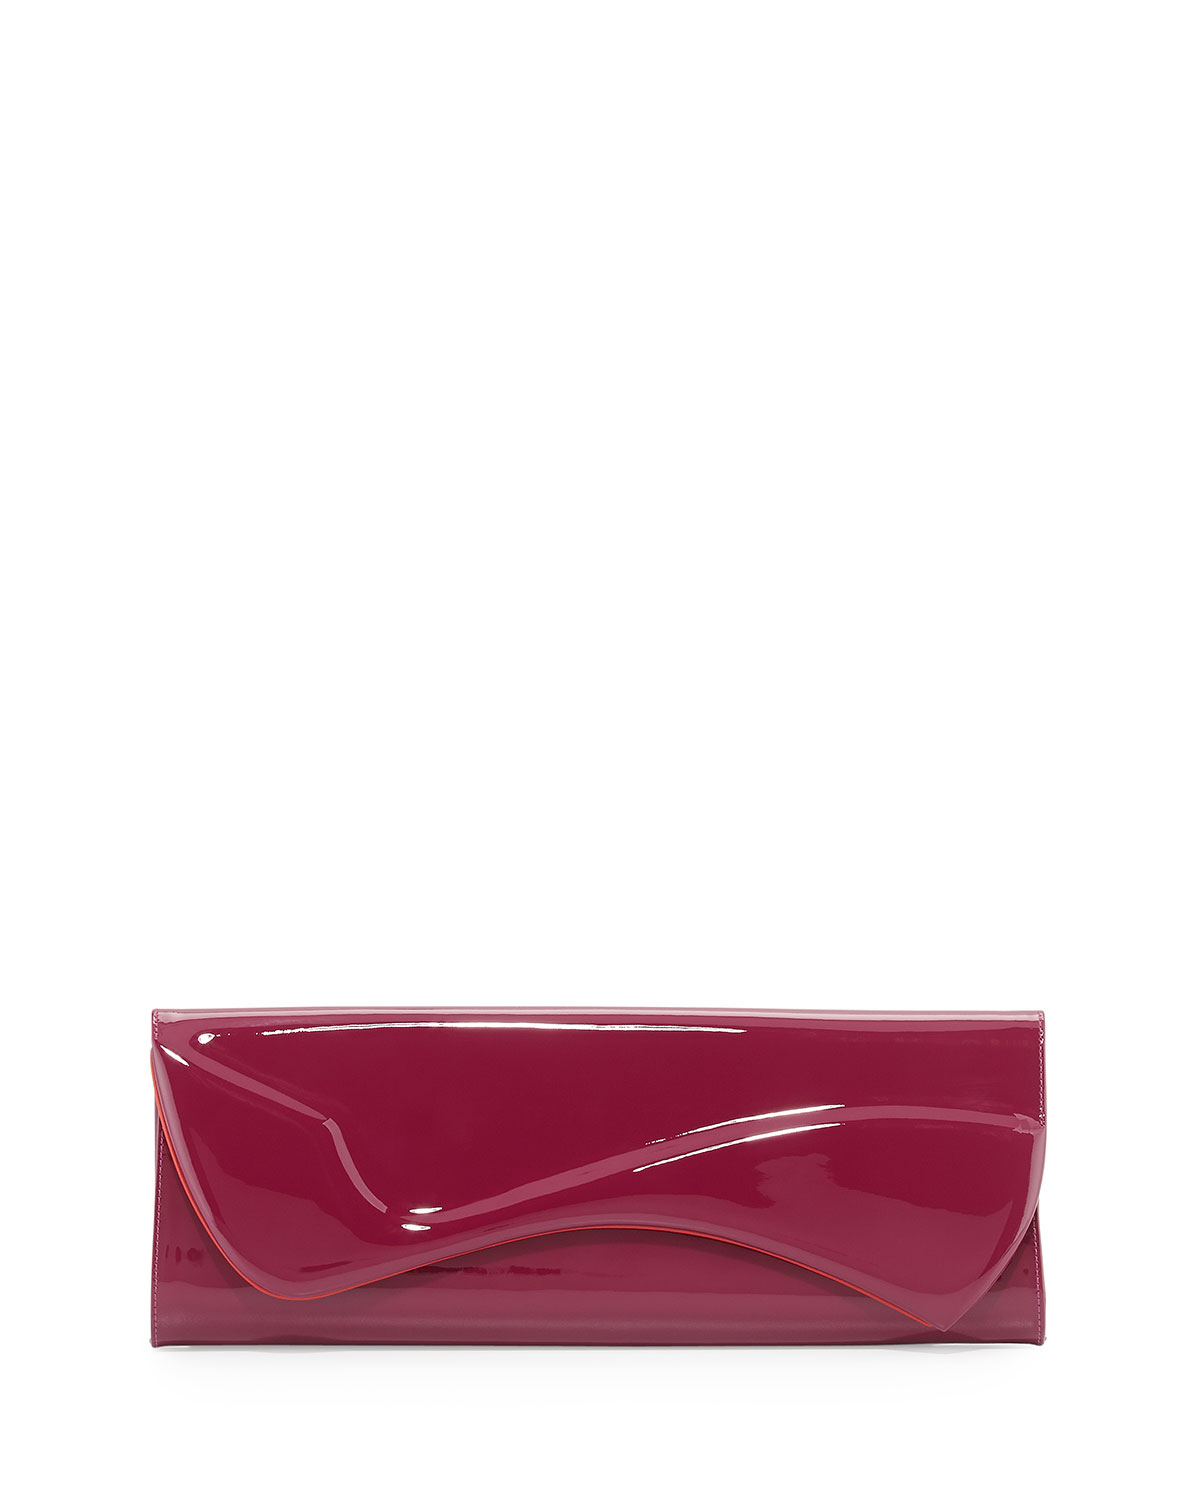 Christian Louboutin Pigalle Patent Clutch Bag in Purple ...